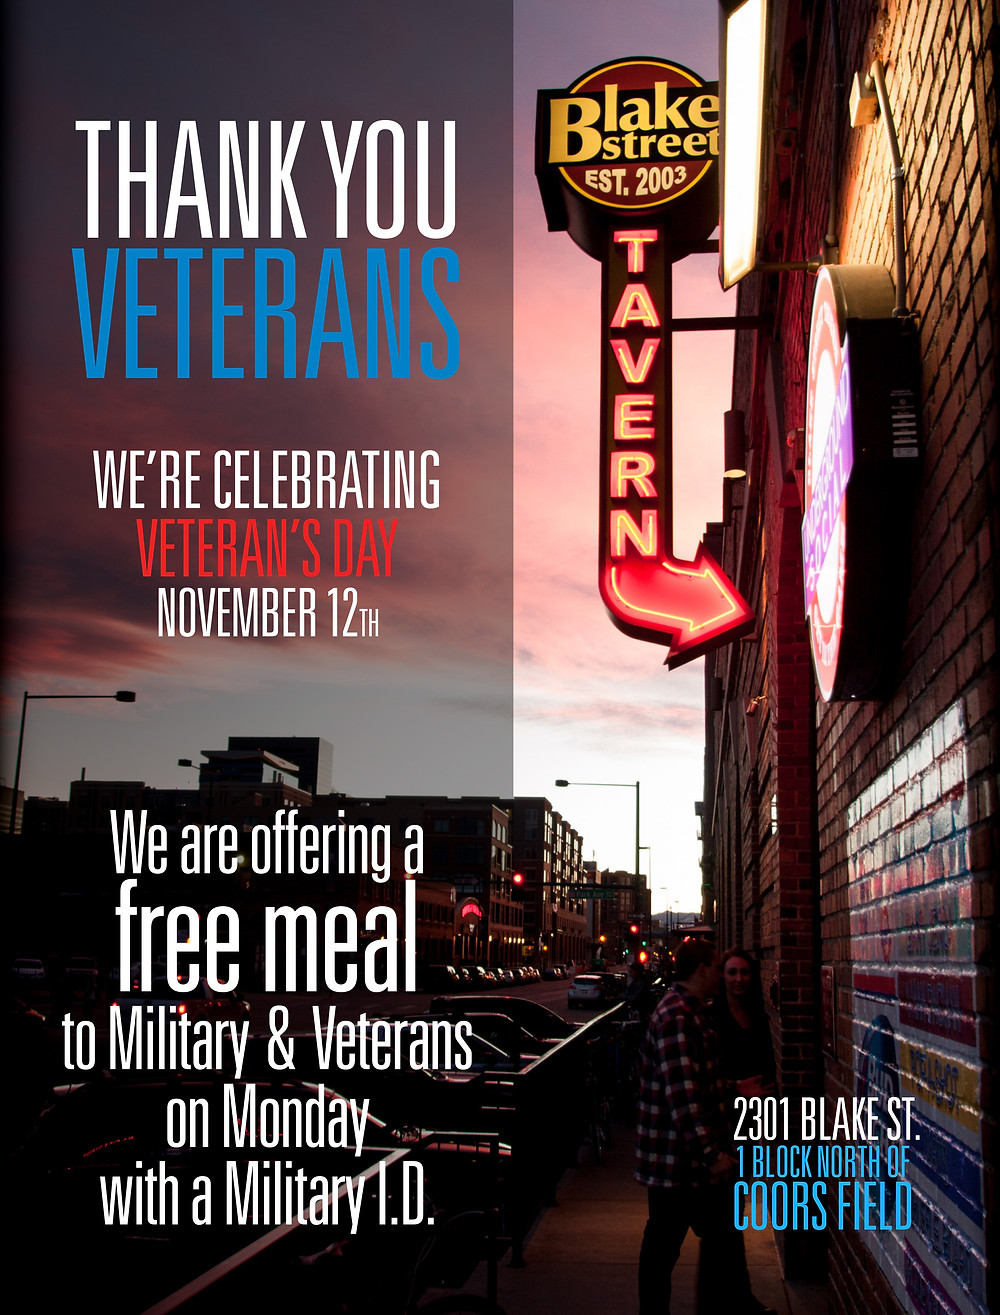 Free Meal for Military and Veterans in Denver